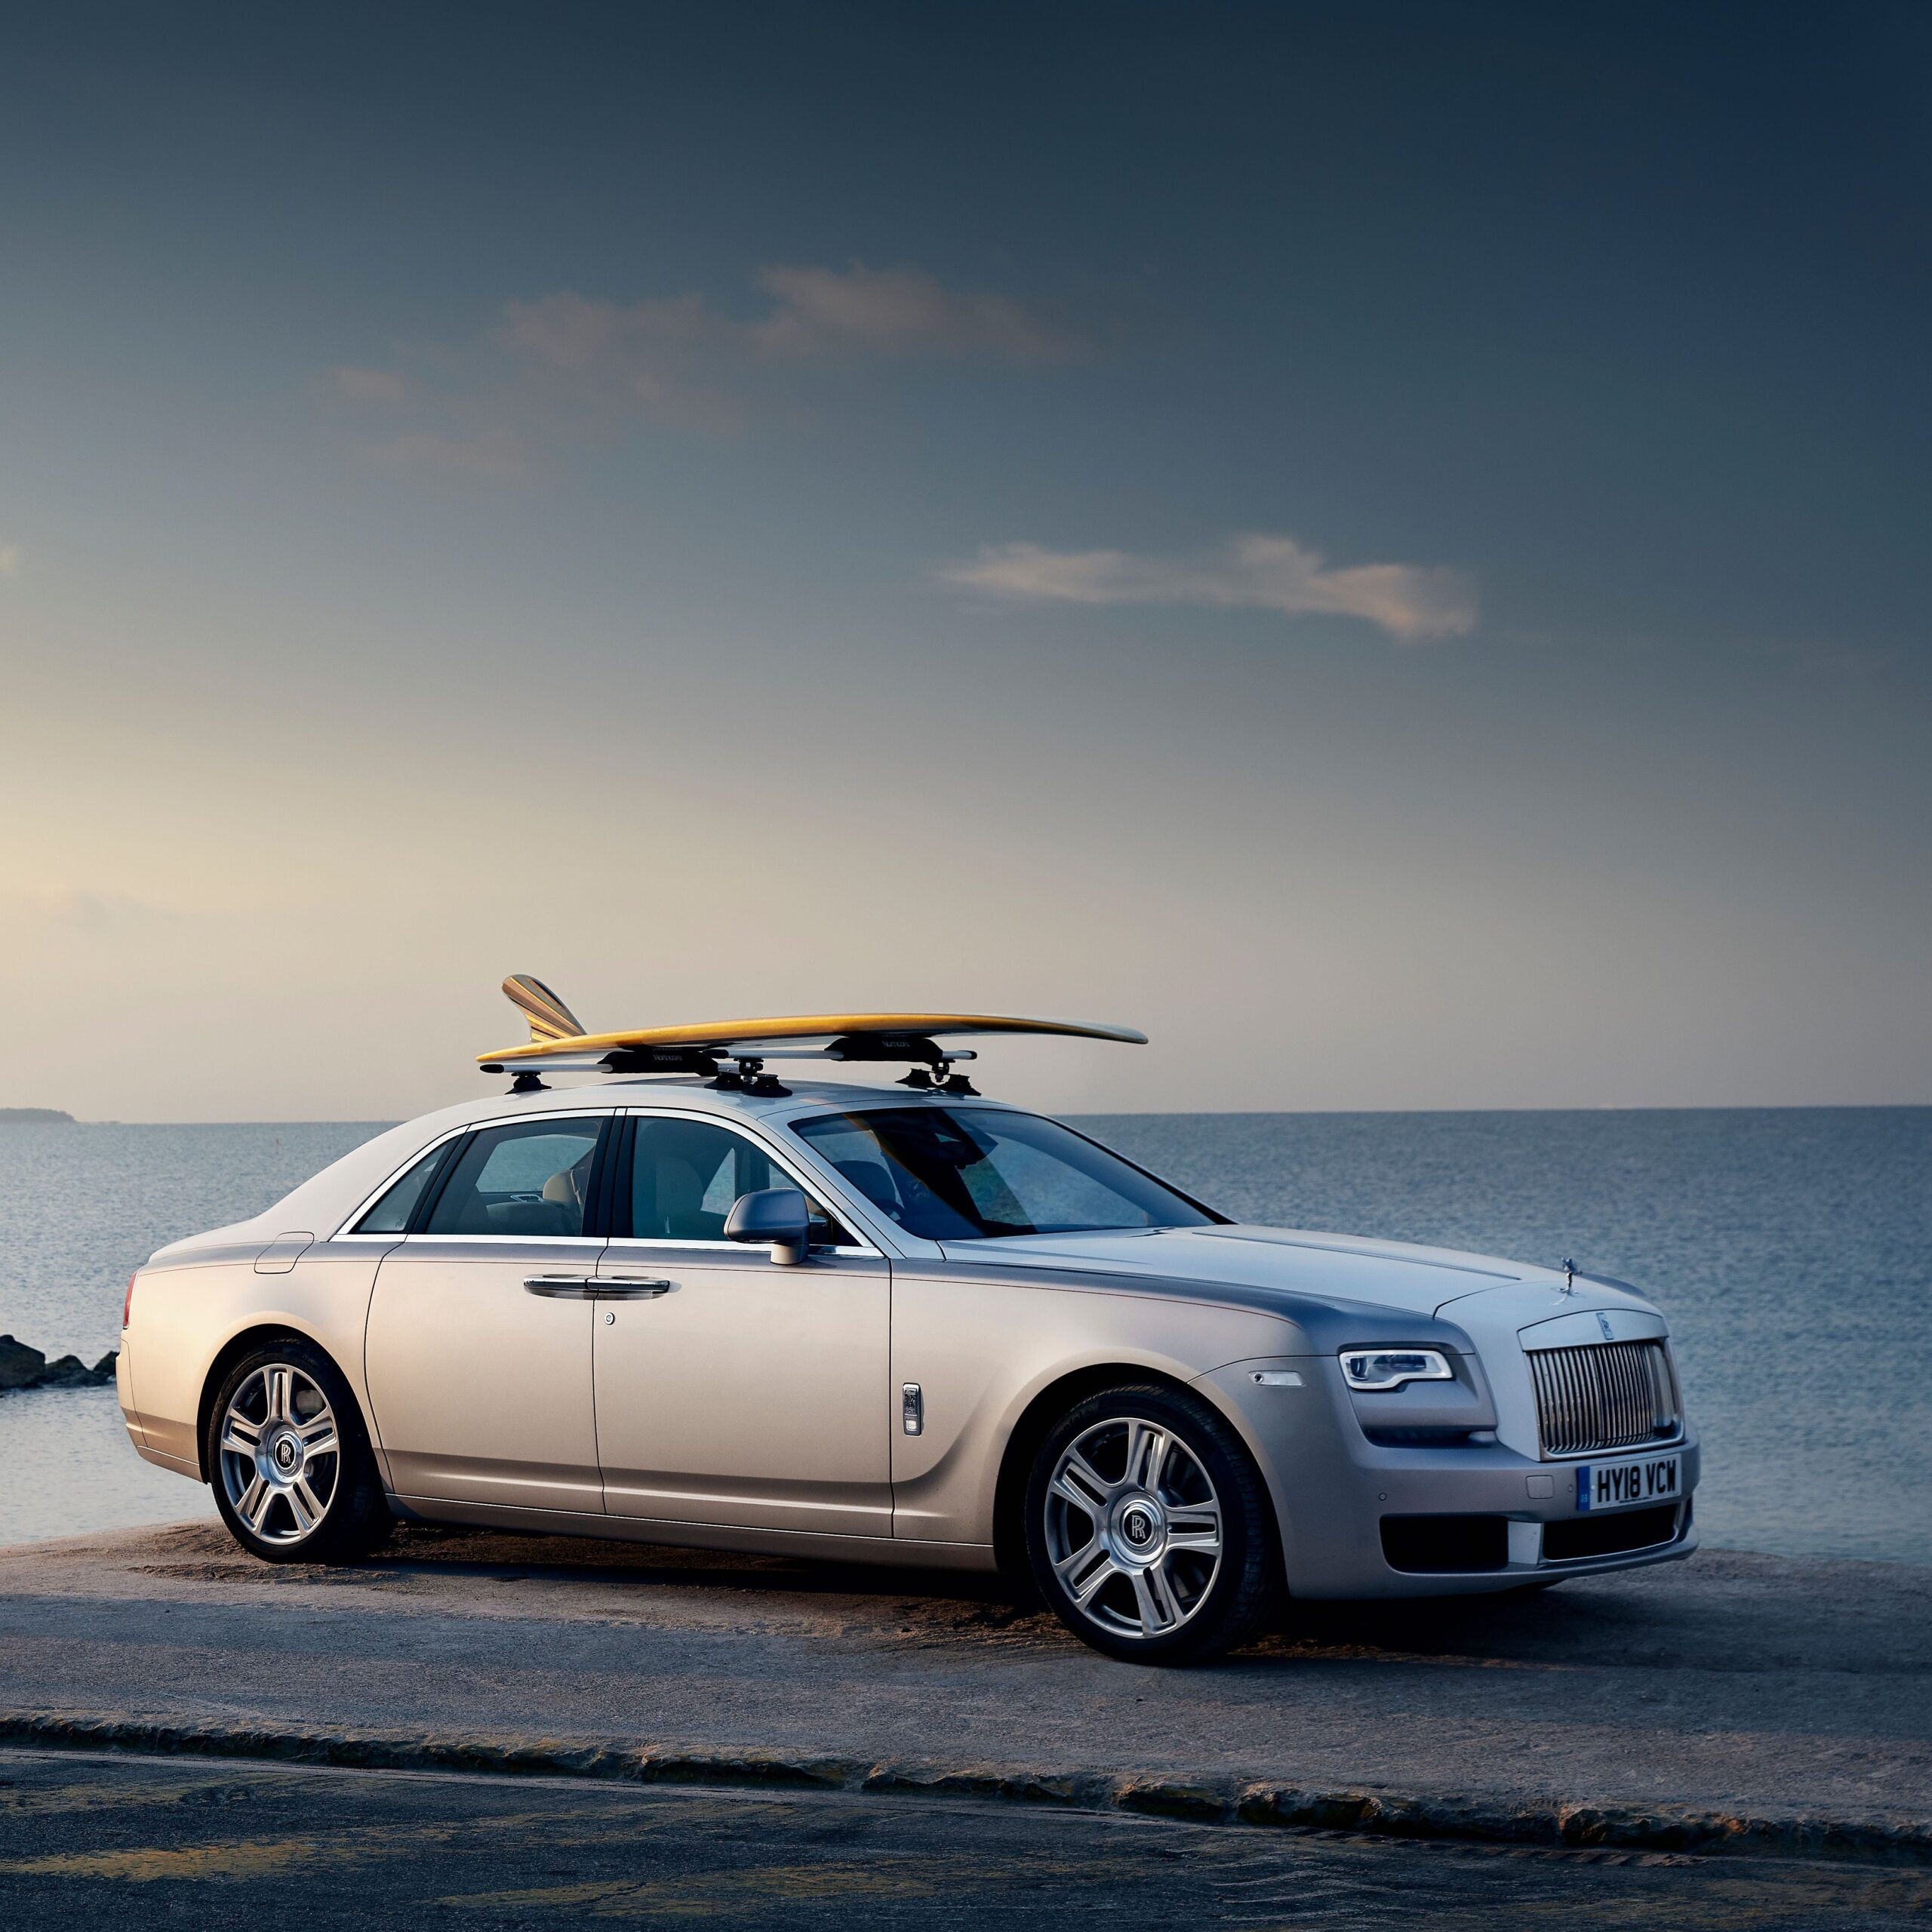 Roll Royce, 360 Magazine, Ghost, luxury, bespoke